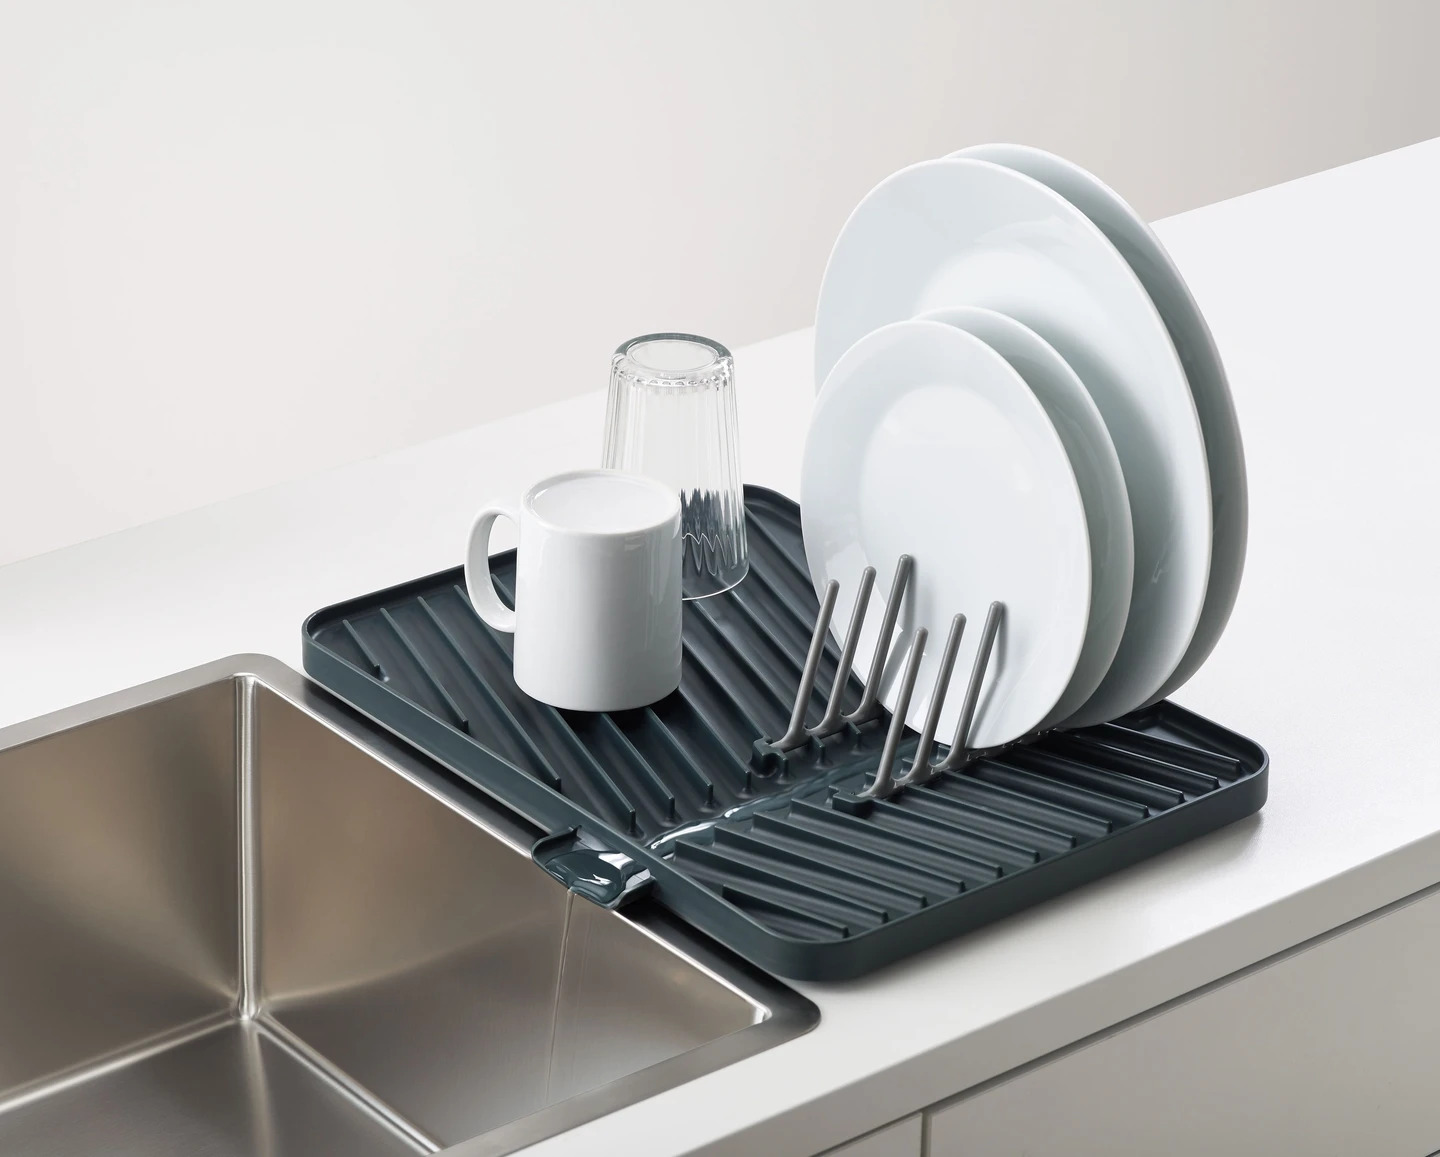 folding dish rack with dishes drying